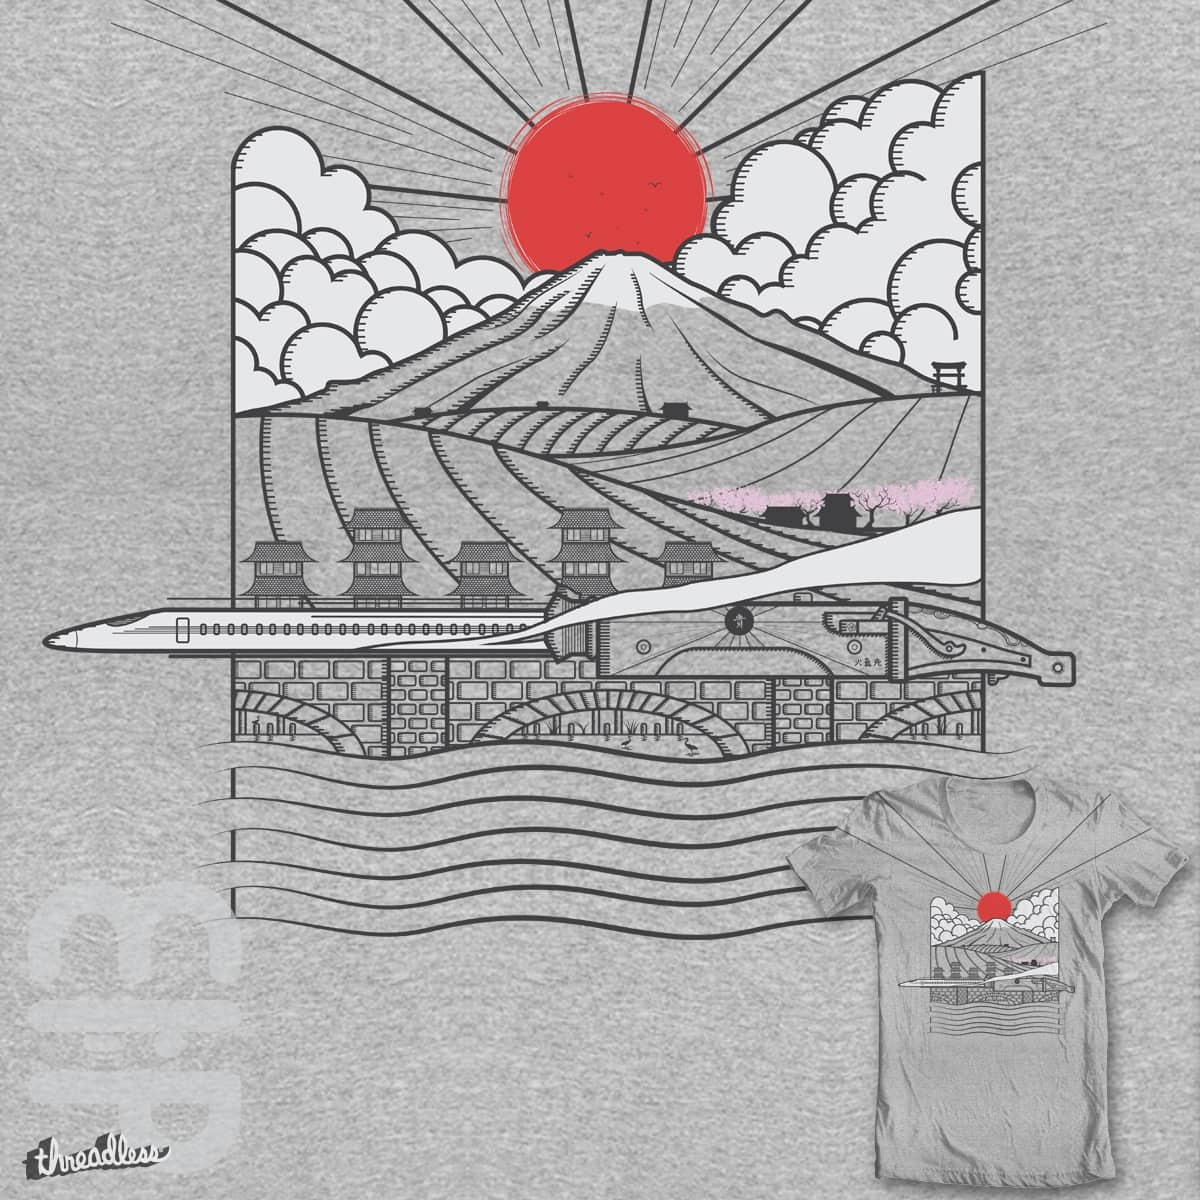 Bullet Train by mip1980 on Threadless